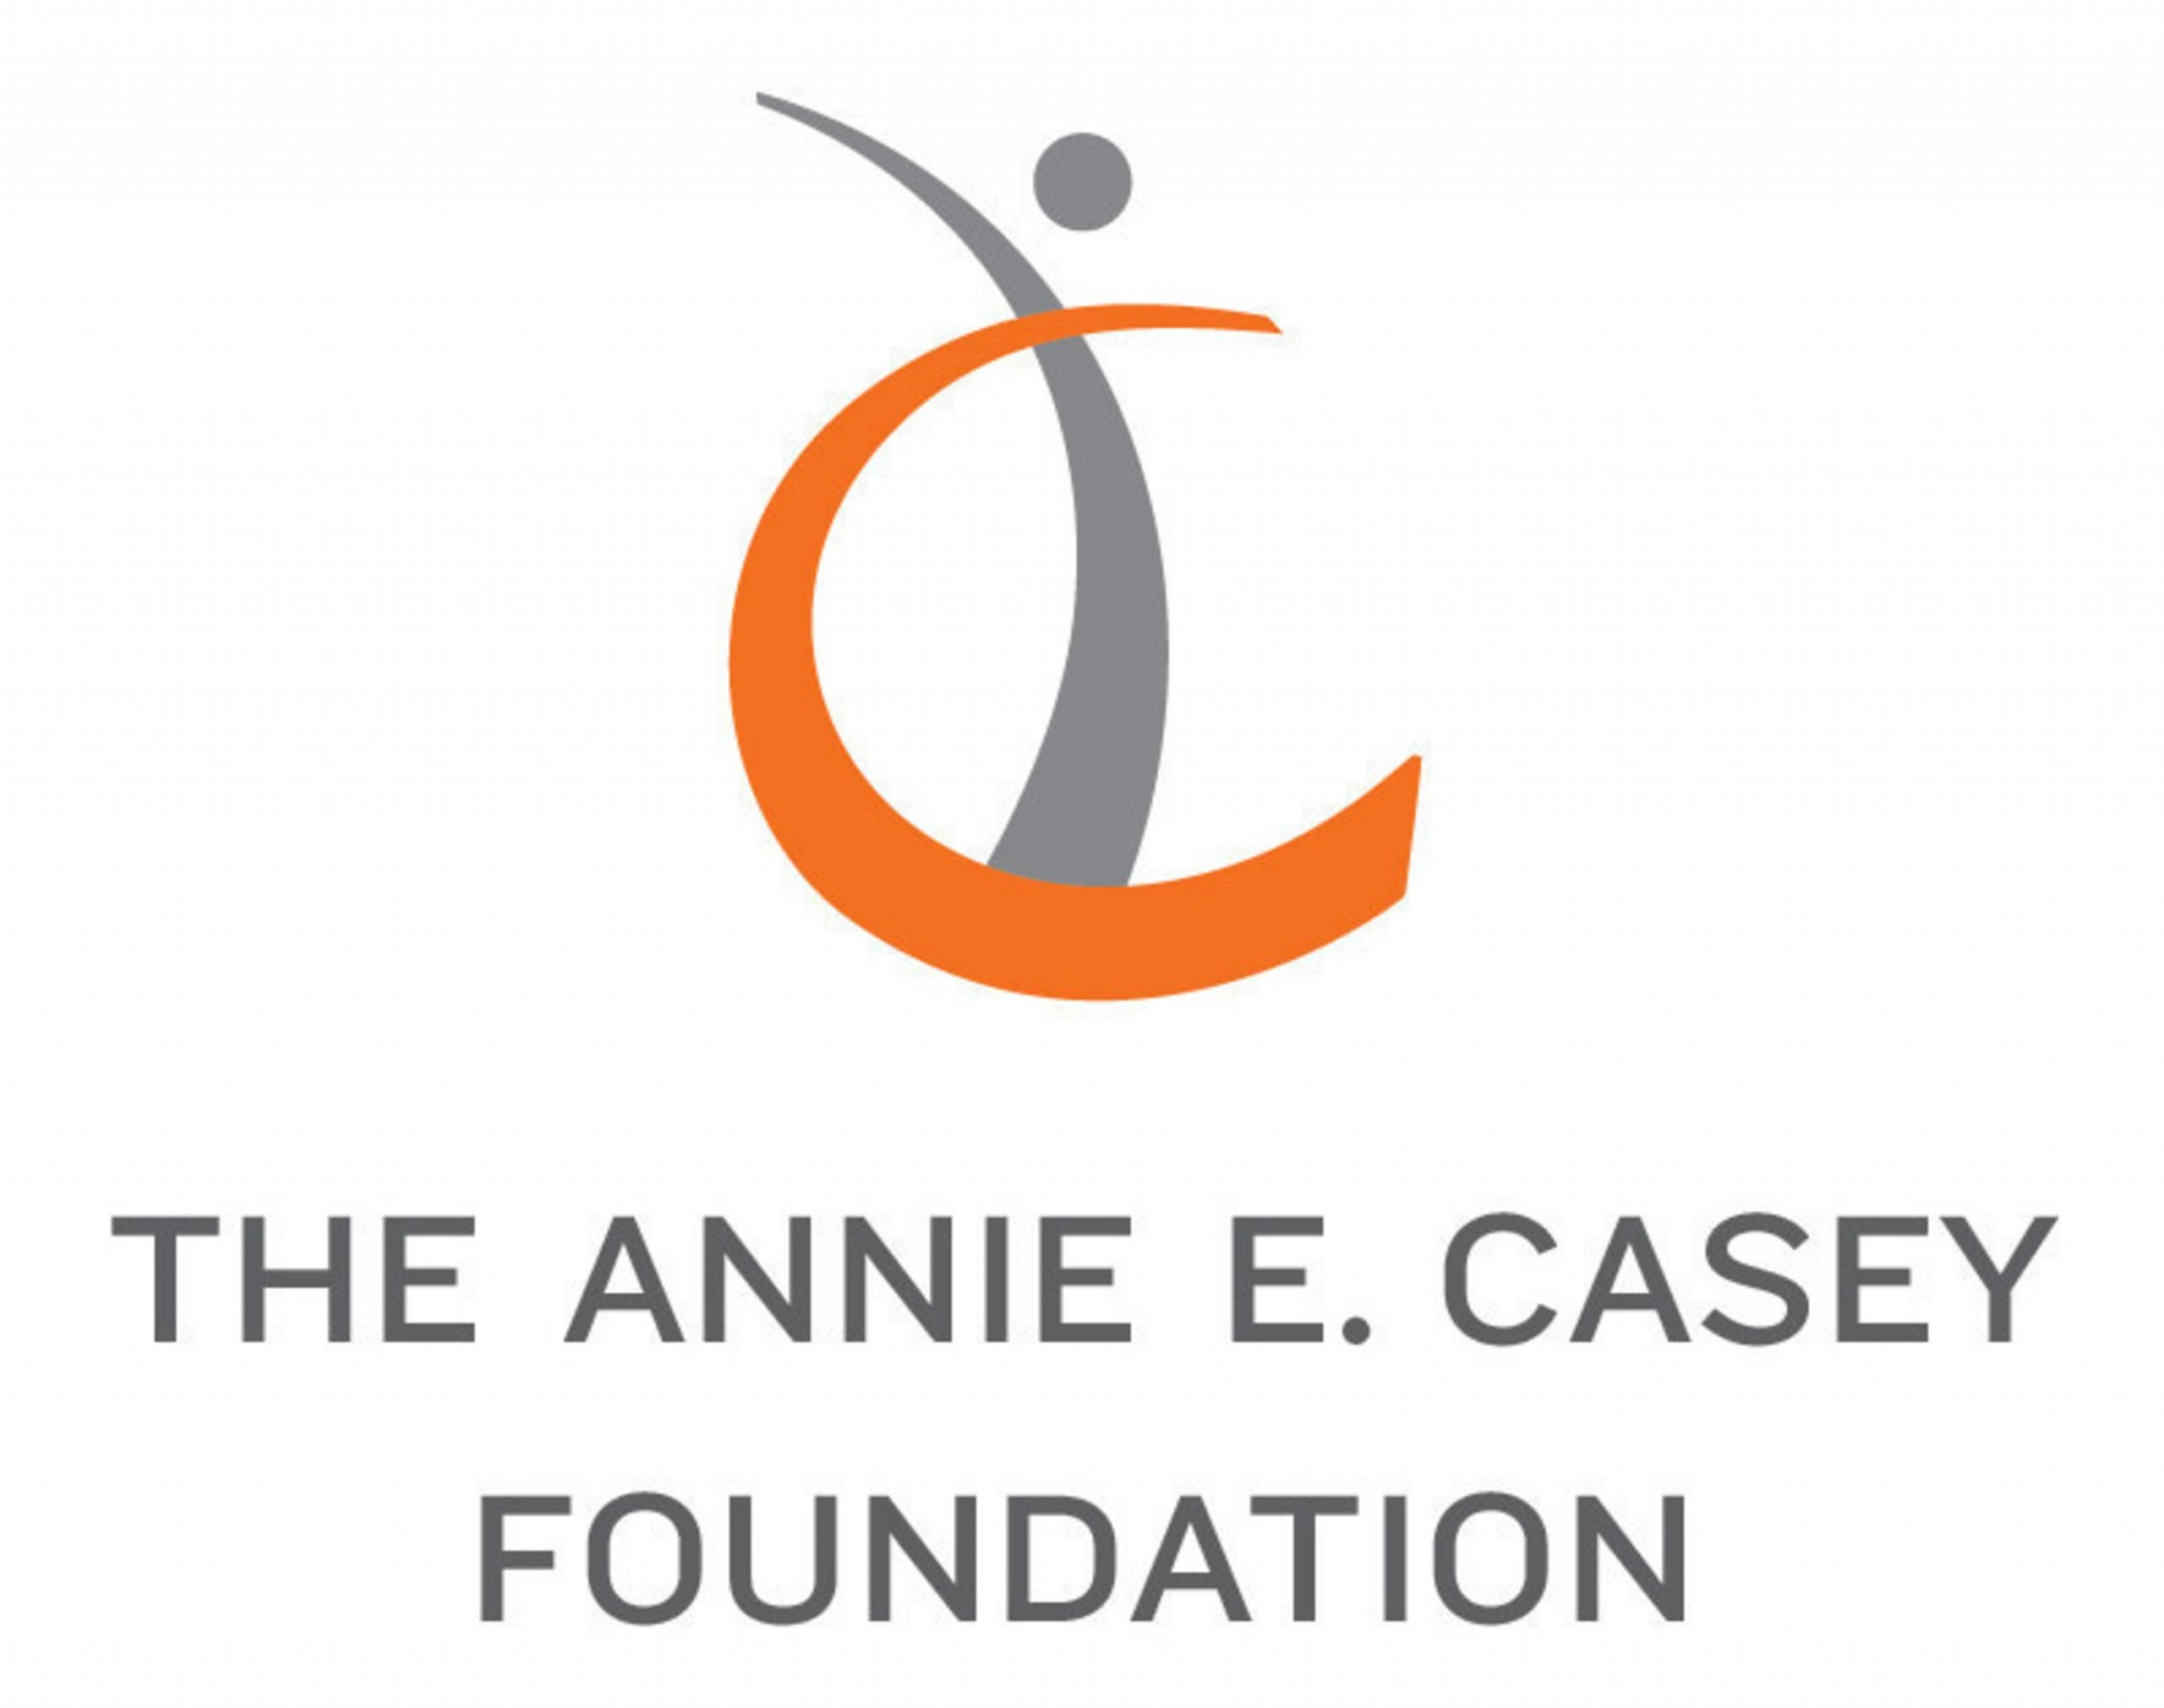 Annie E. Casey Foundation logo